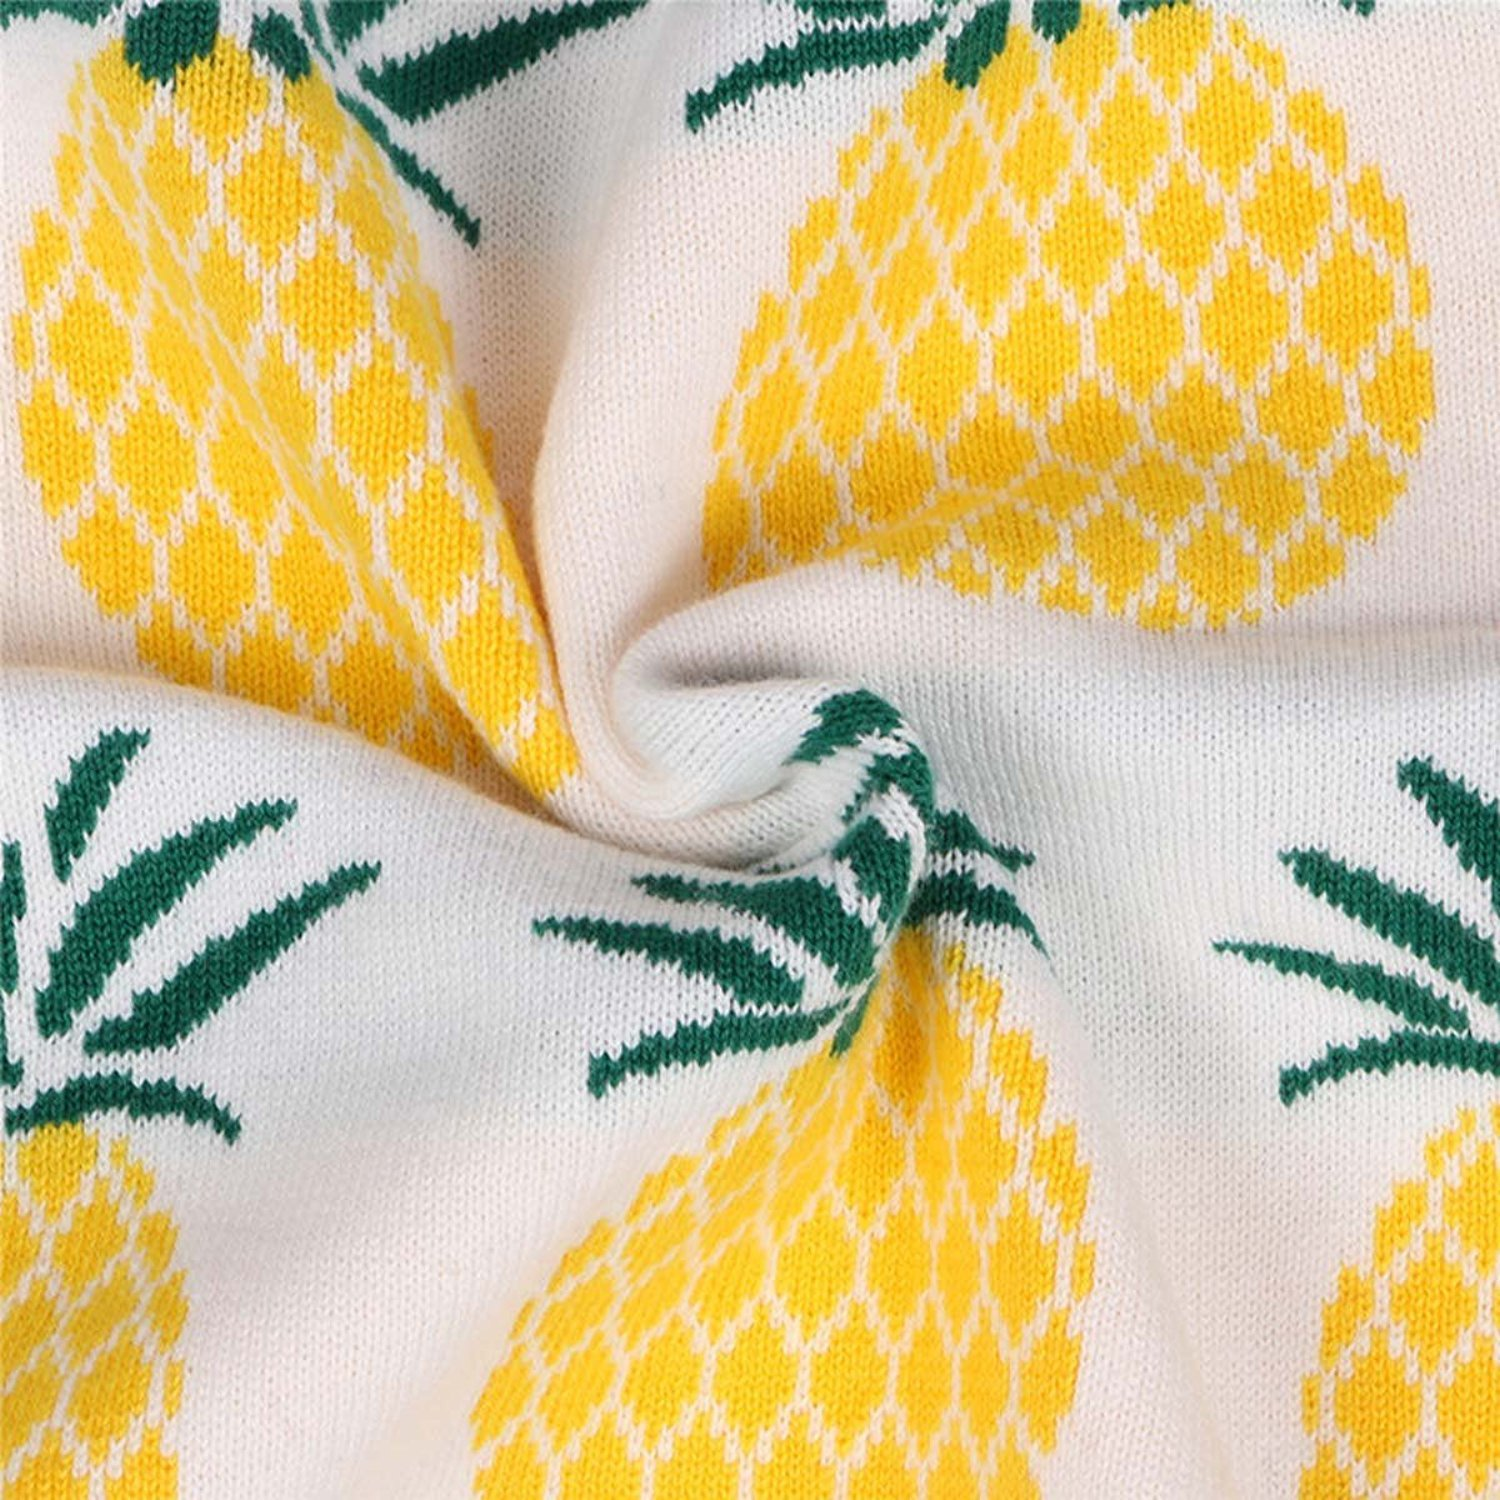 Jojobaby Toddler Unisex Baby Crewneck Cotton Pineapple Print Knit Pullover Sweater